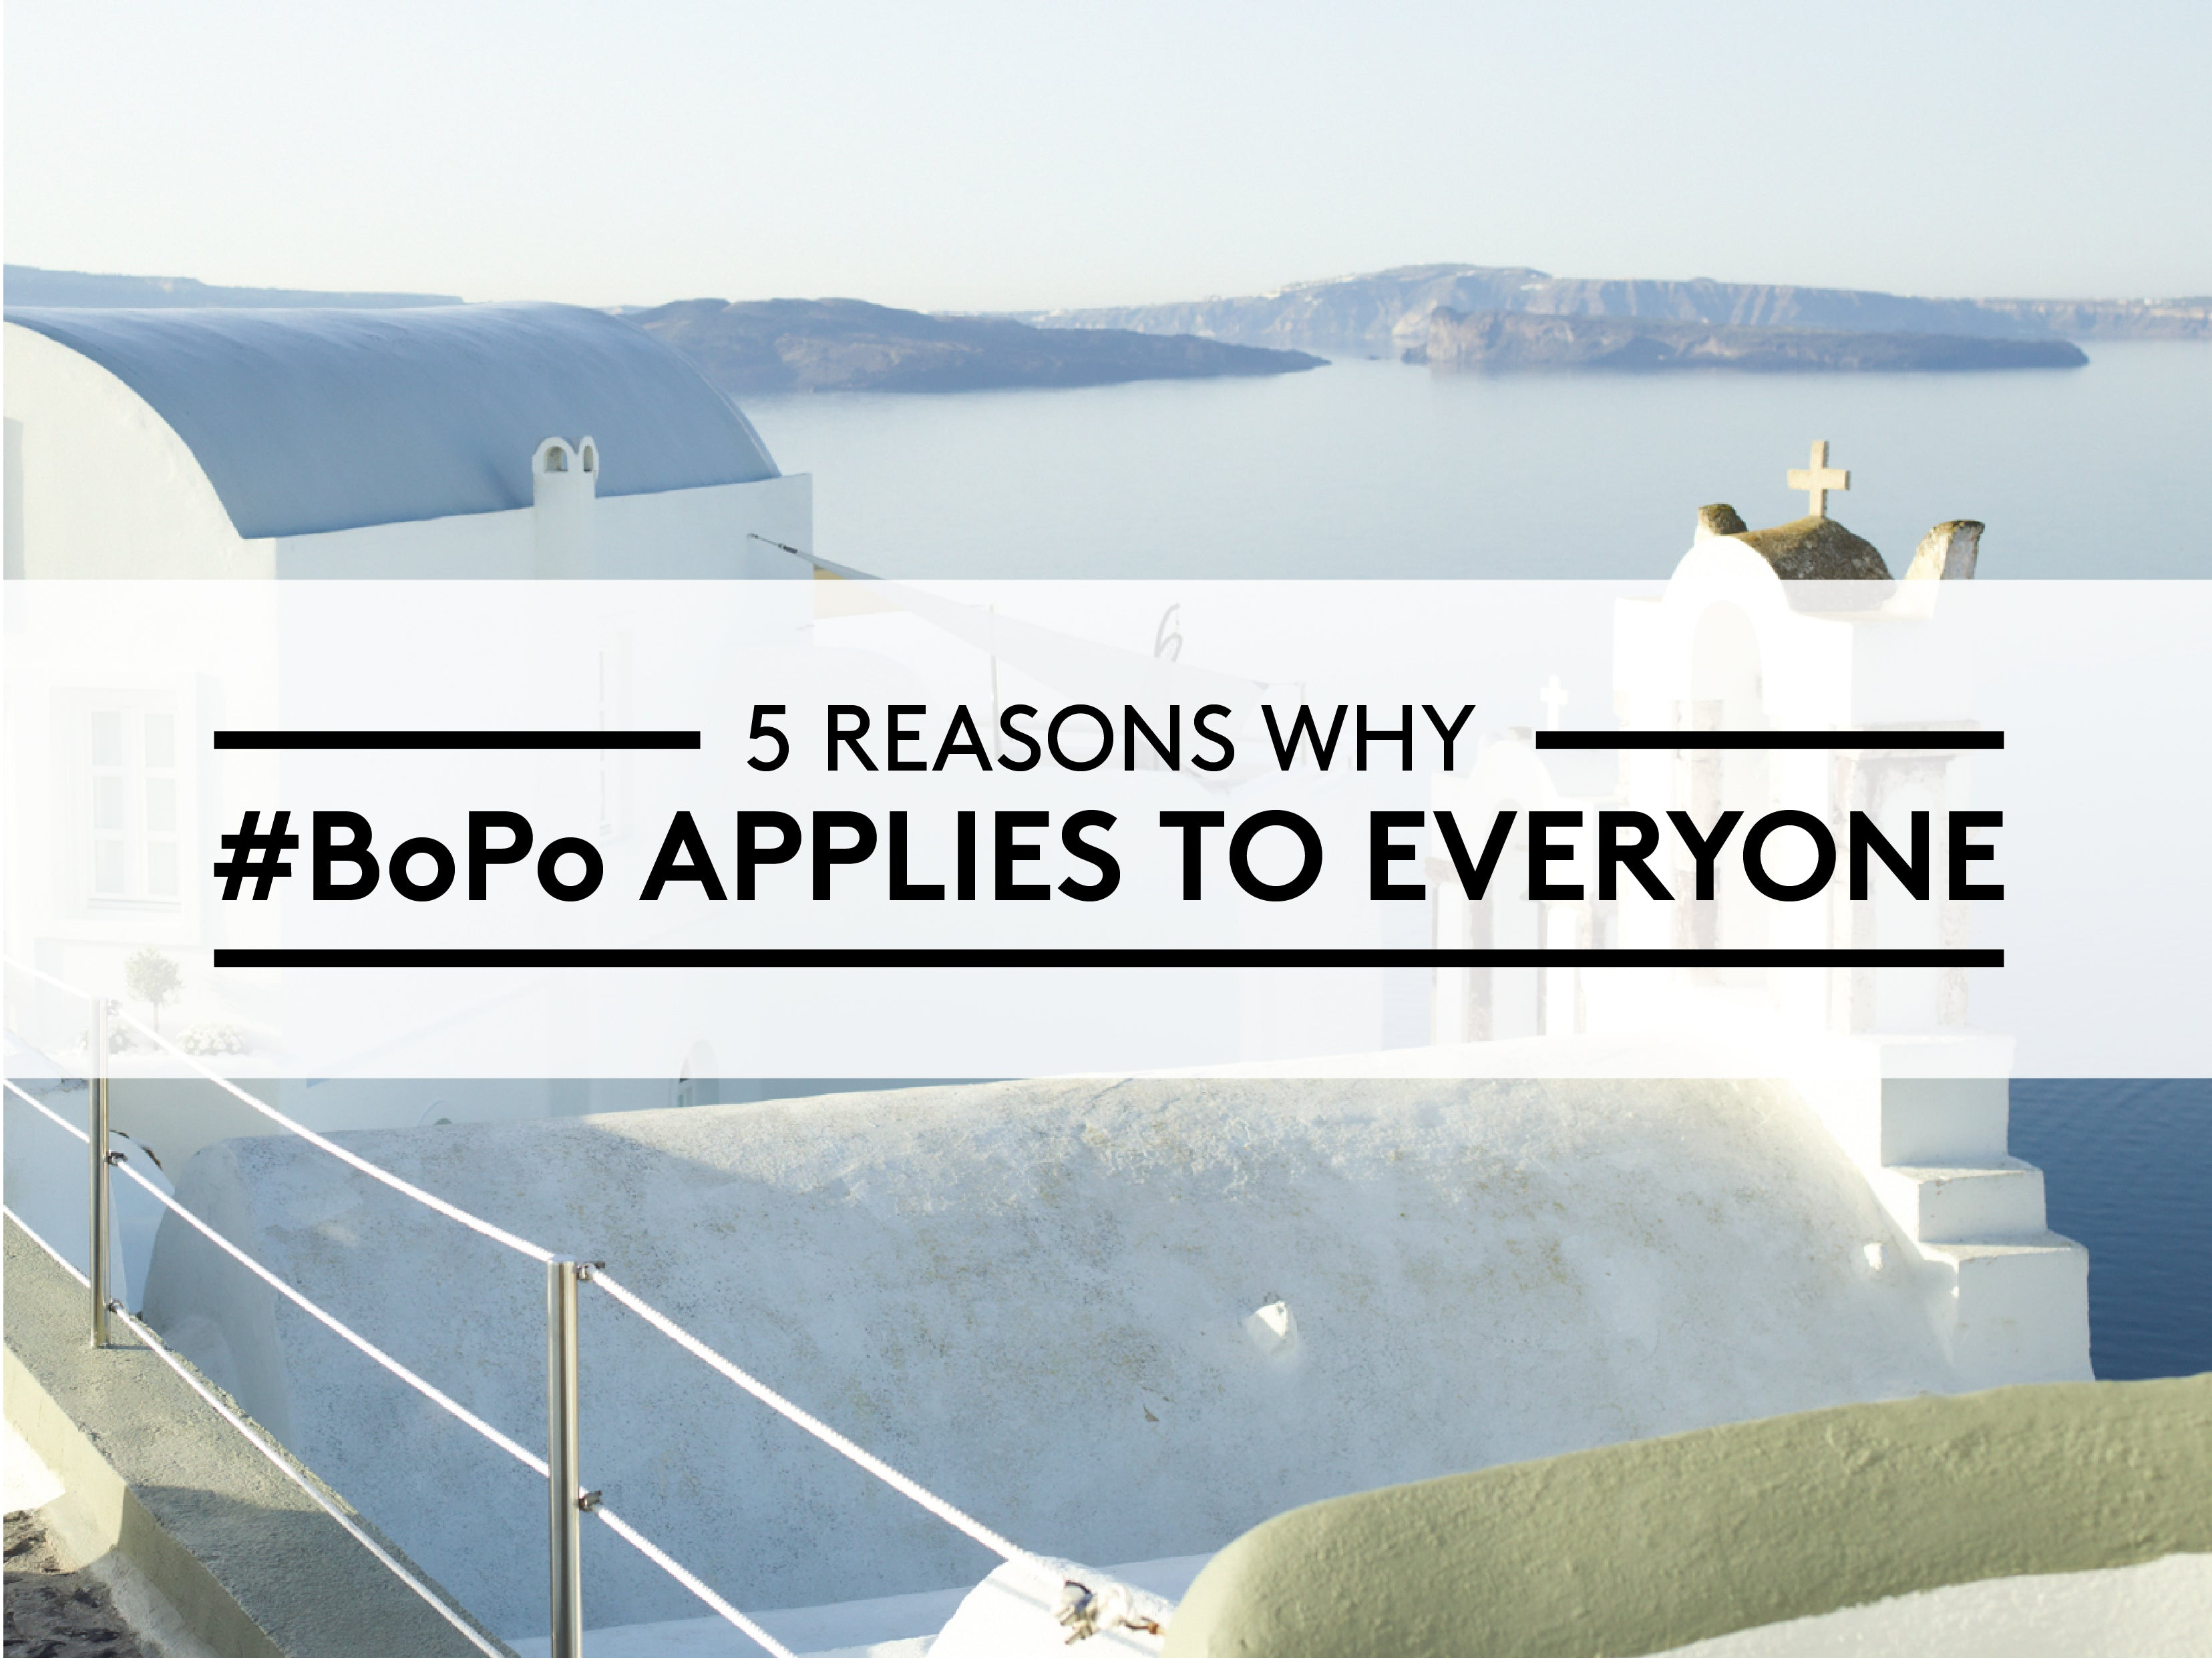 5 Reasons Why #BoPo Applies to Everyone